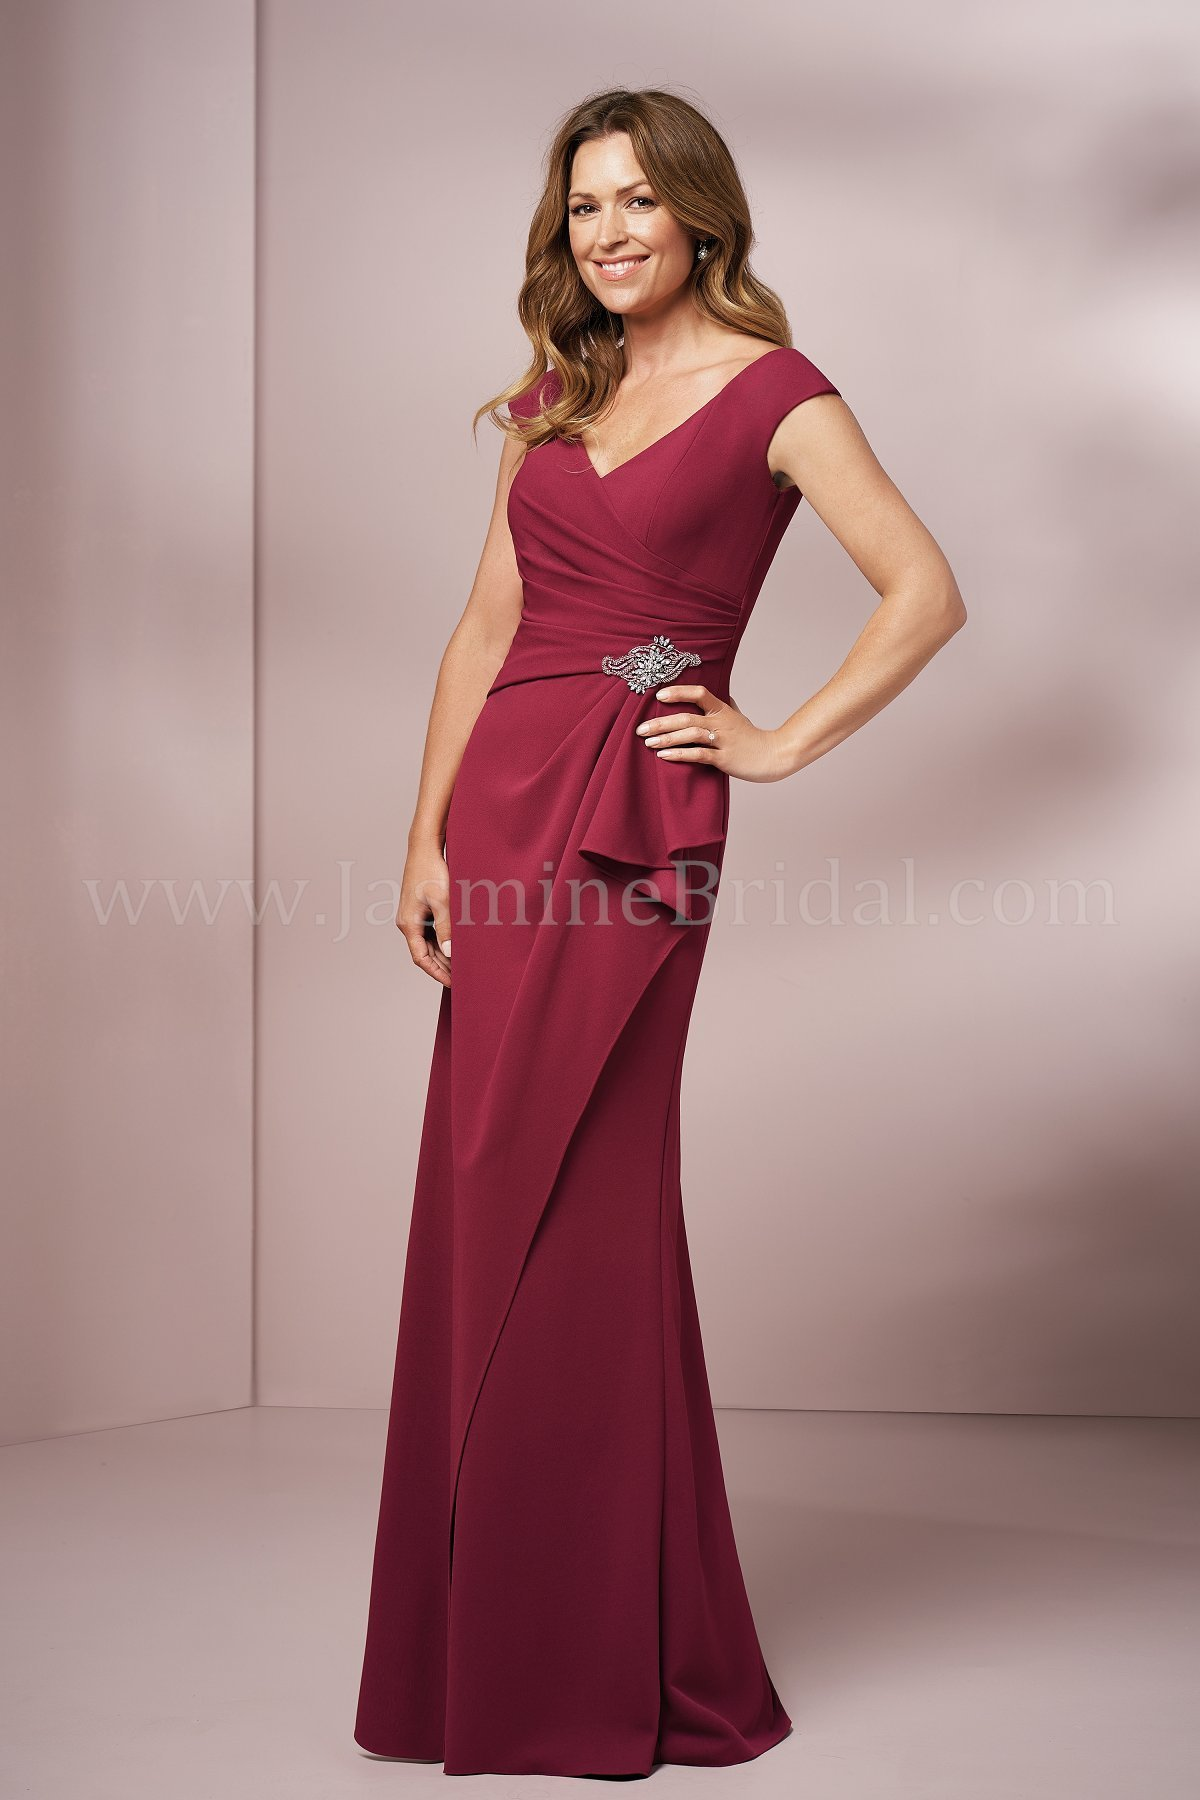 mother-of-the-bride-dresses-J205005-F